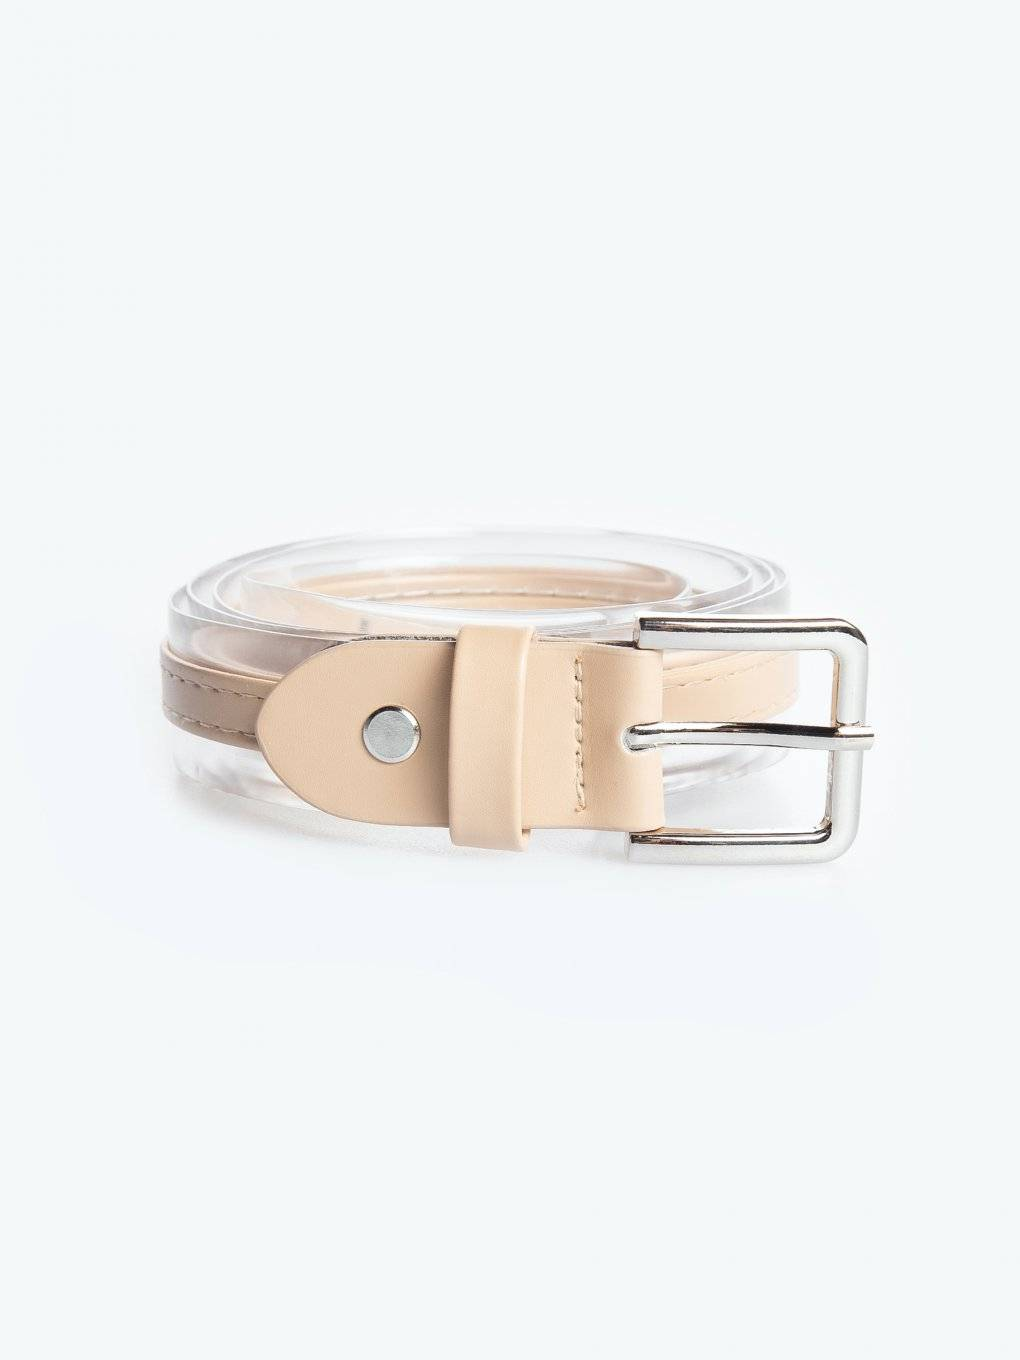 Plastic belt with silver buckle